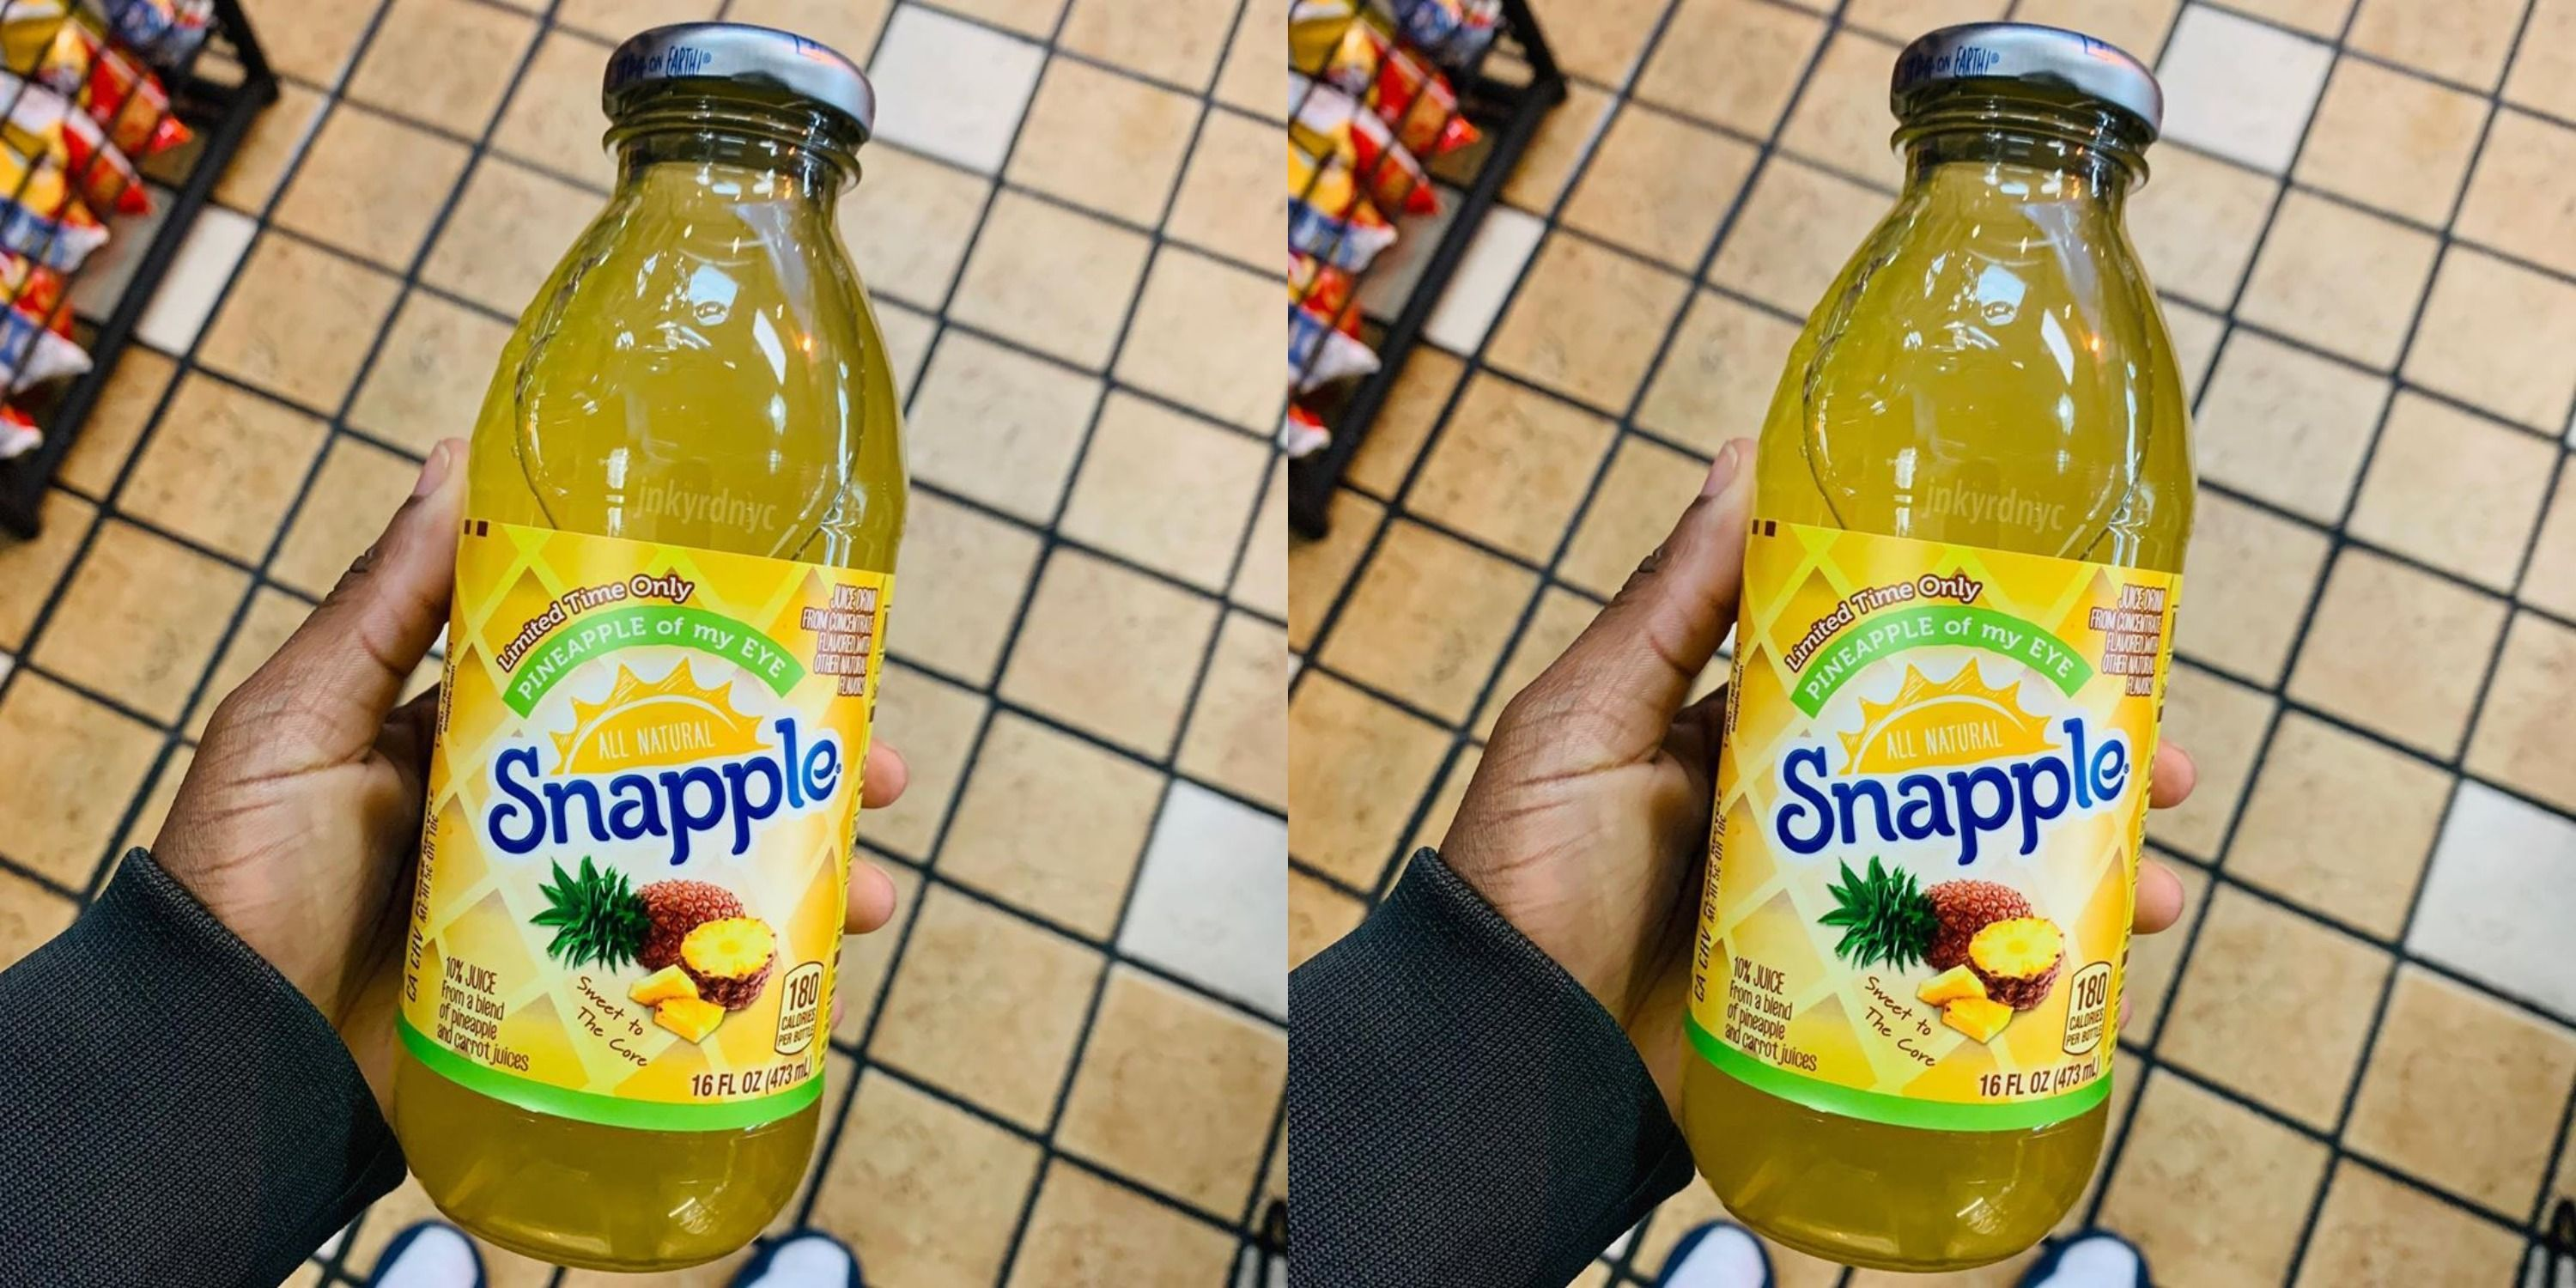 Snapple Released A New Pineapple Flavor For Summer